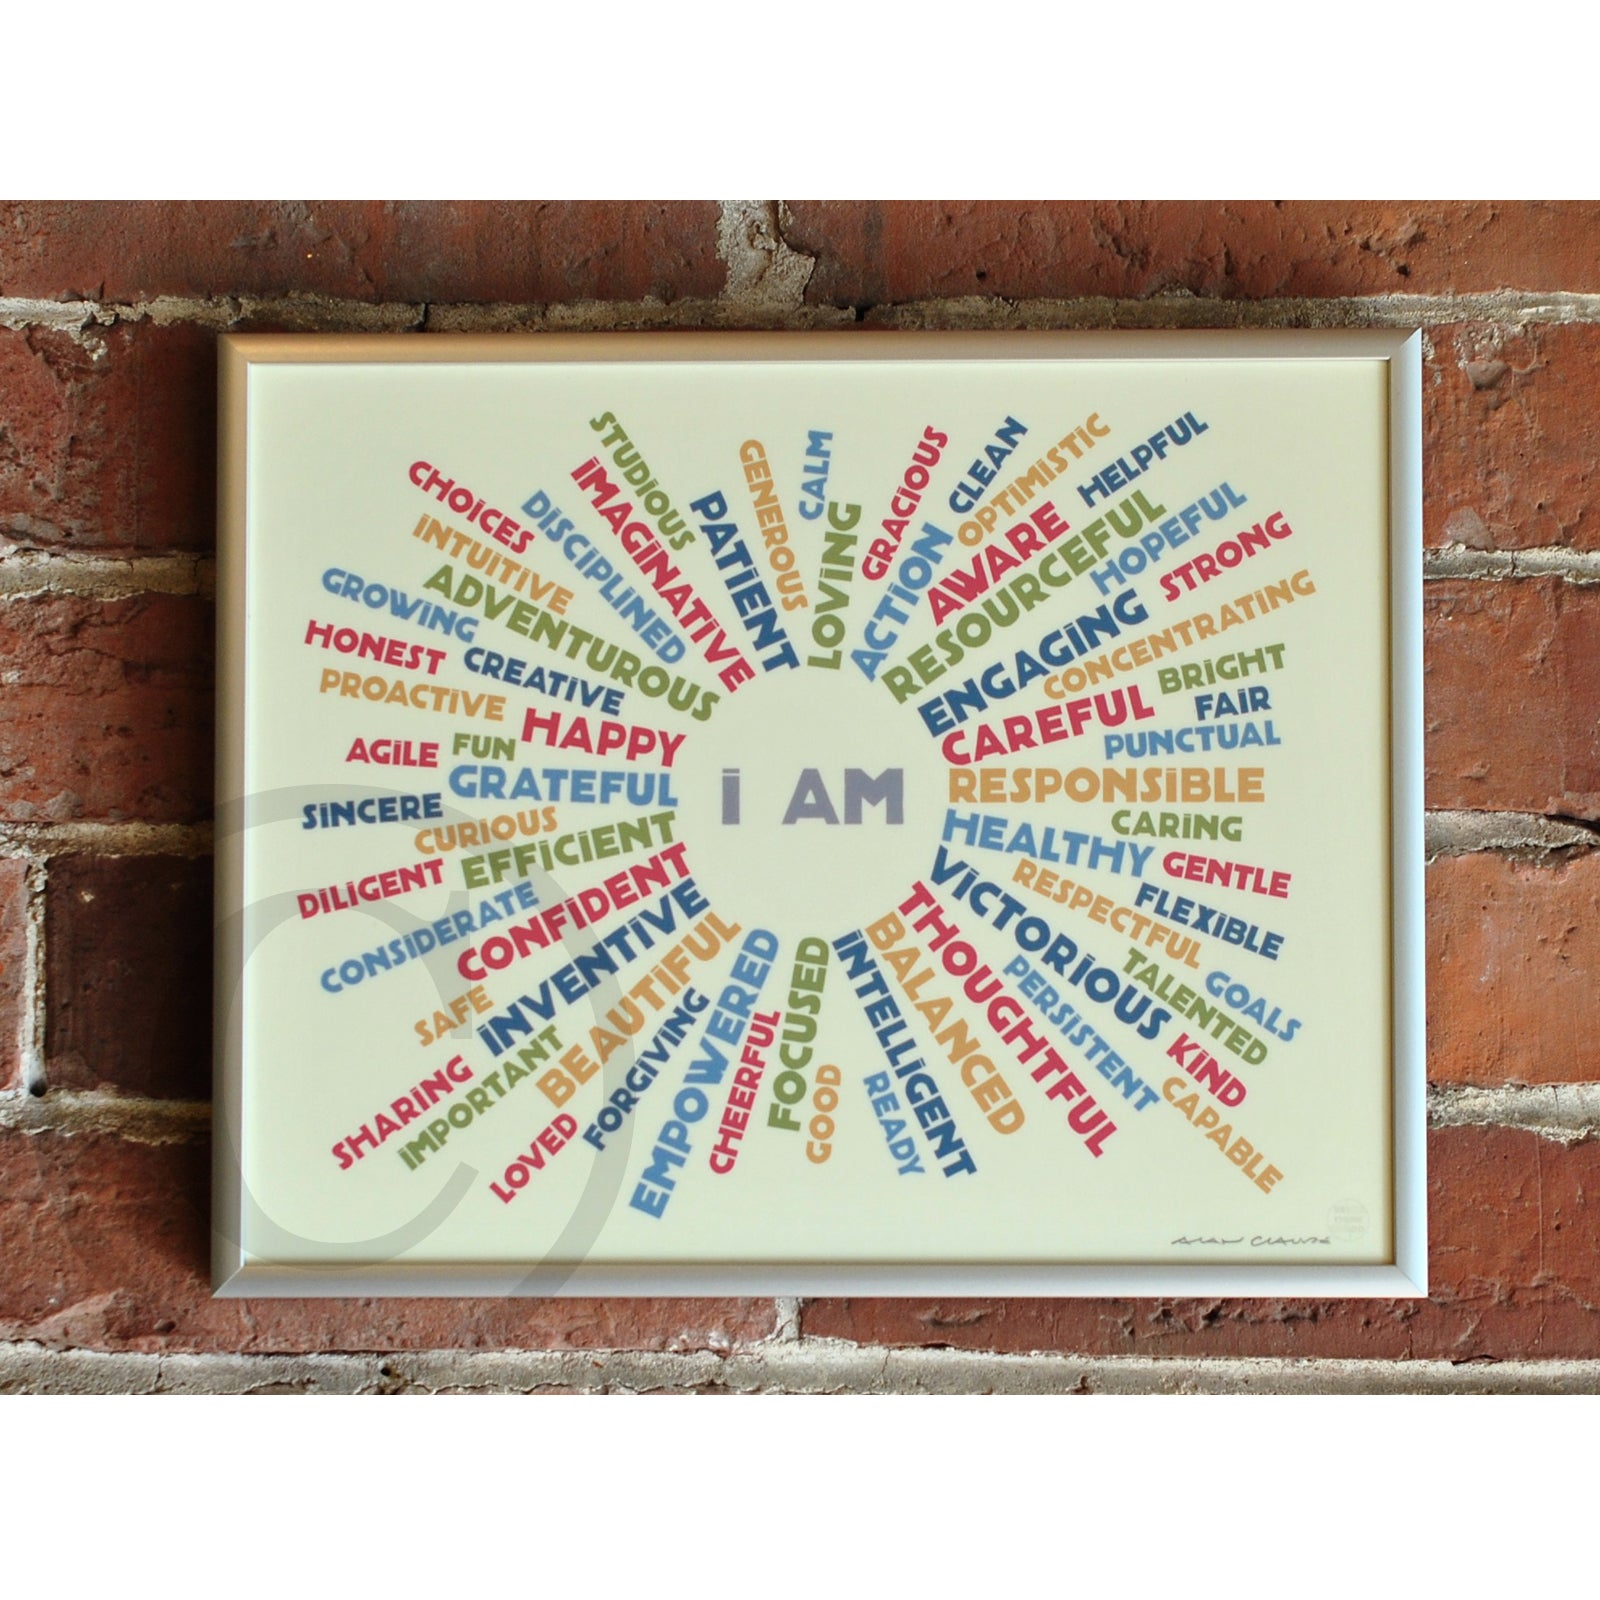 "I AM YOUTH MINDFULNESS - Retro Art Print 8"" x 10"" Framed"